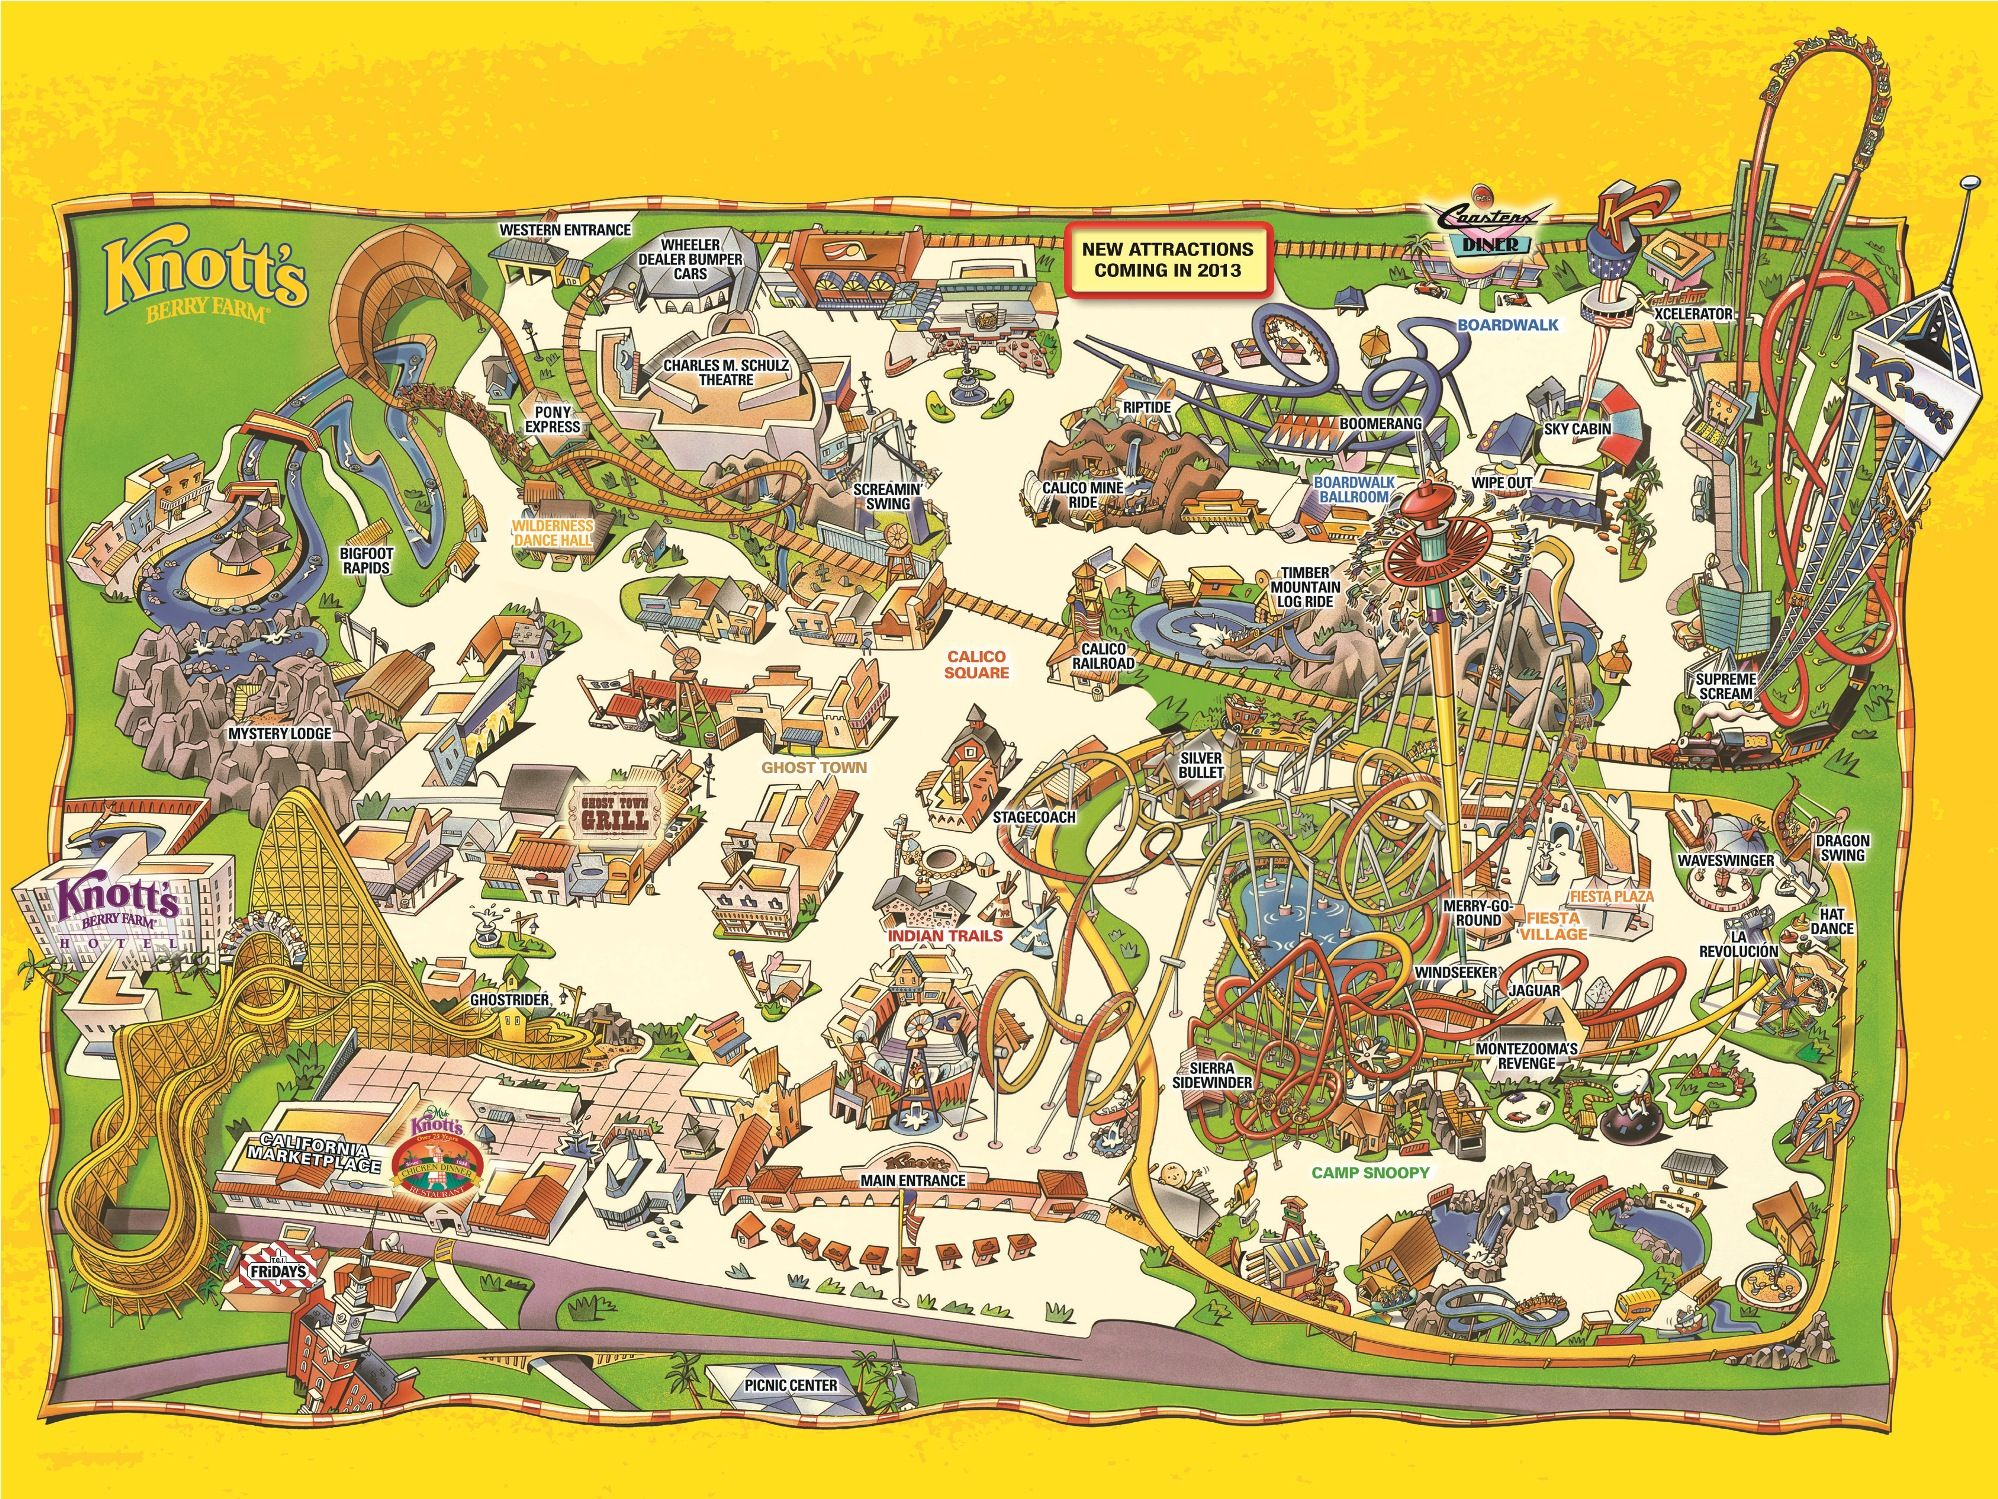 Park Map | Knott's Berry Farm, Buena Park, CA -- Buy tickets online Knotts Map on ski map, sun map, buena park ca map, universal map, cruise map, magic mountain map, theater map, cedar point map, adventure map, worlds of fun map, dorney park map, disneyland map, six flags map, aquarium map, beach map, attraction map, disney map, summer map, discovery cove map,